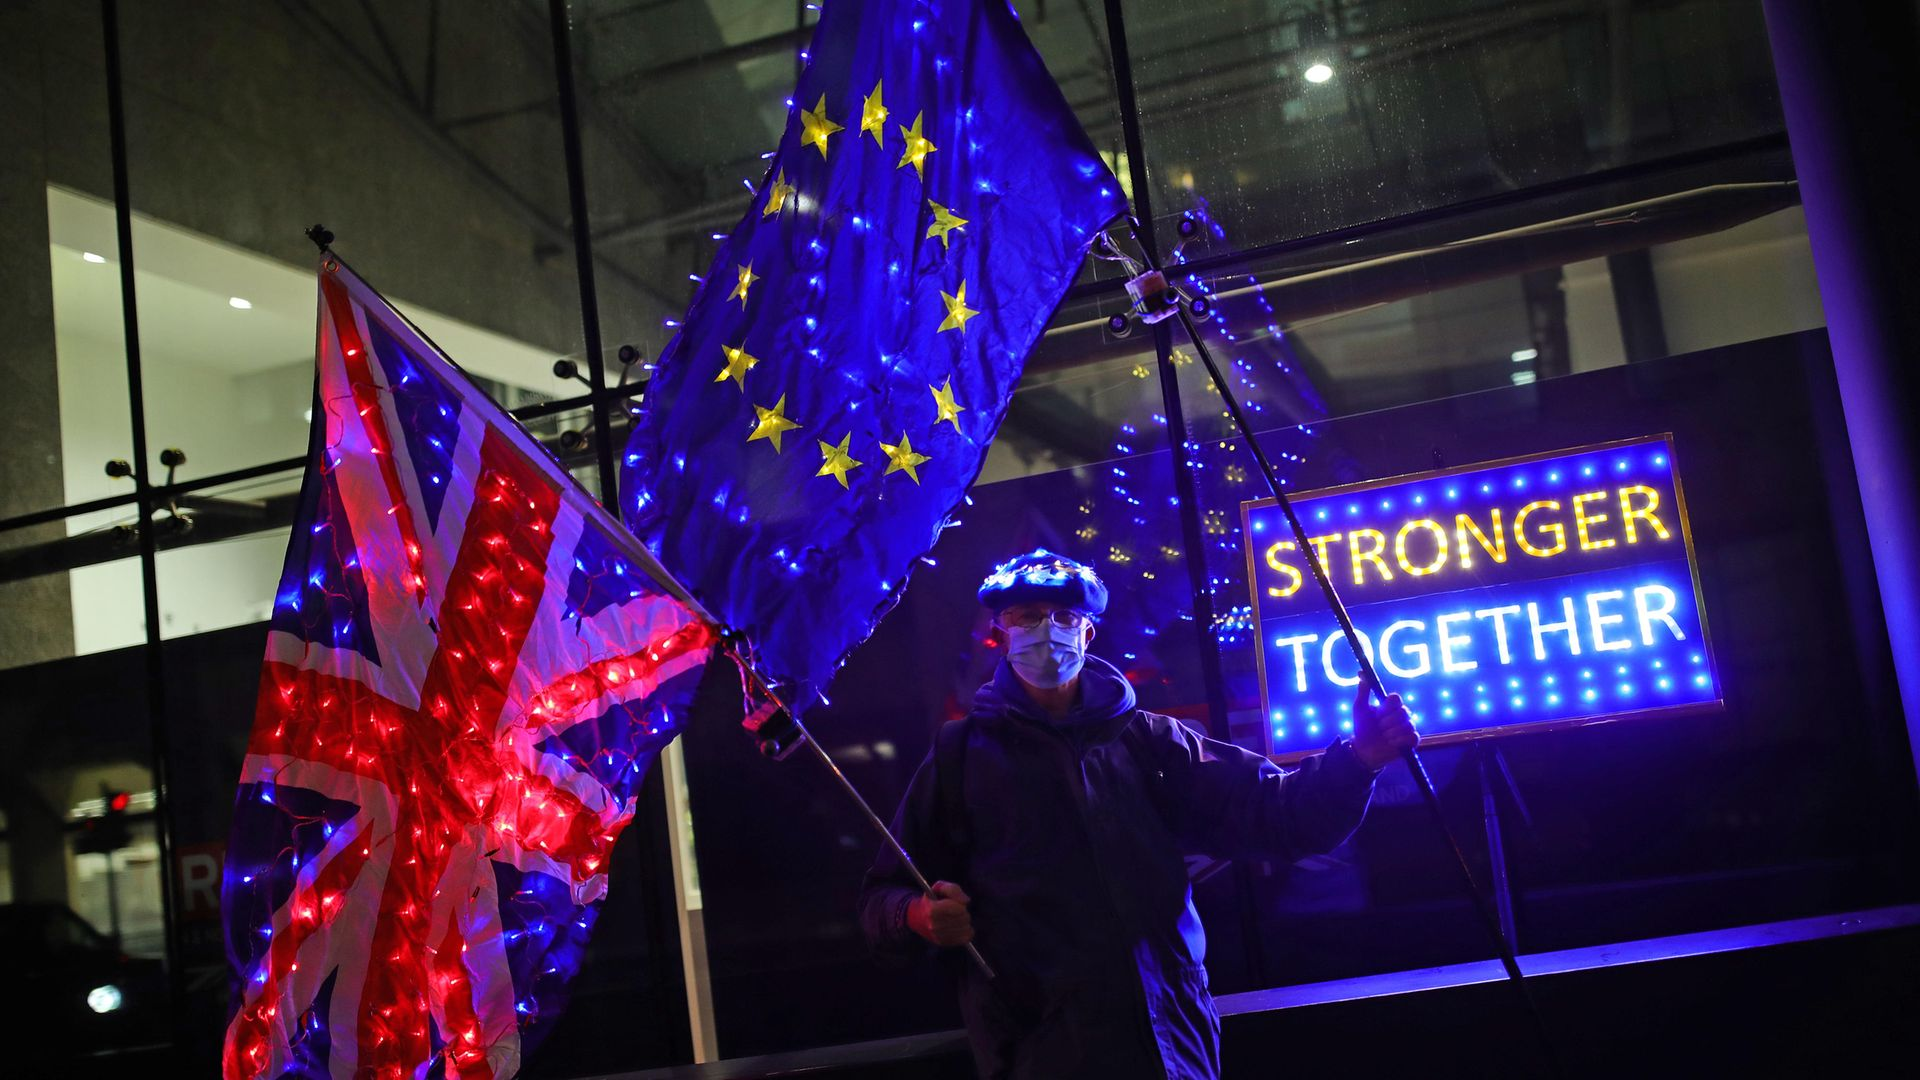 Pro-European protesters campaigning to keep strong links with the EU - Credit: PA